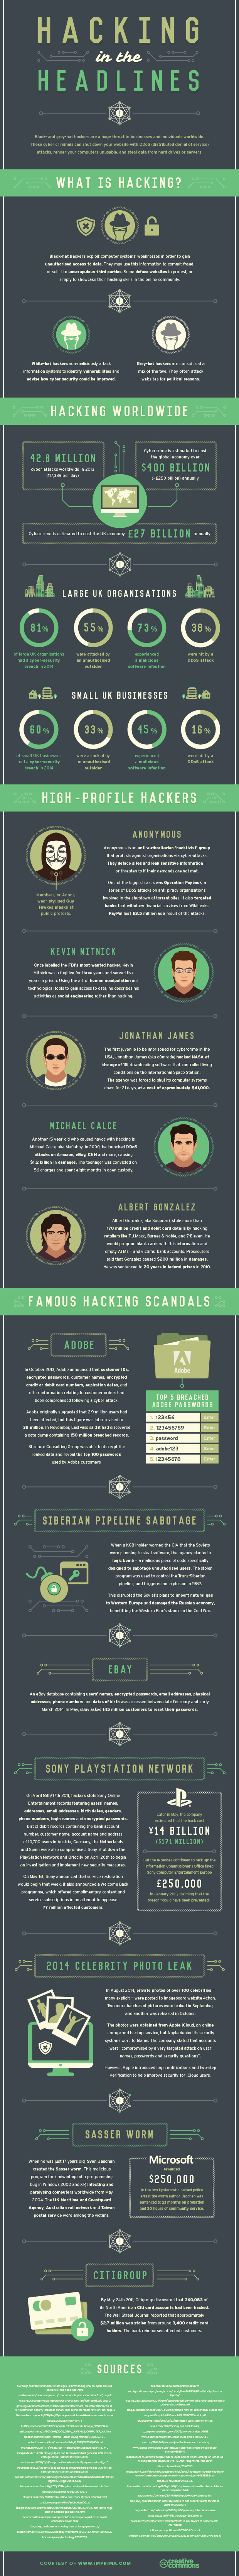 [INFOGRAPHIC] Hacking In The Headlines